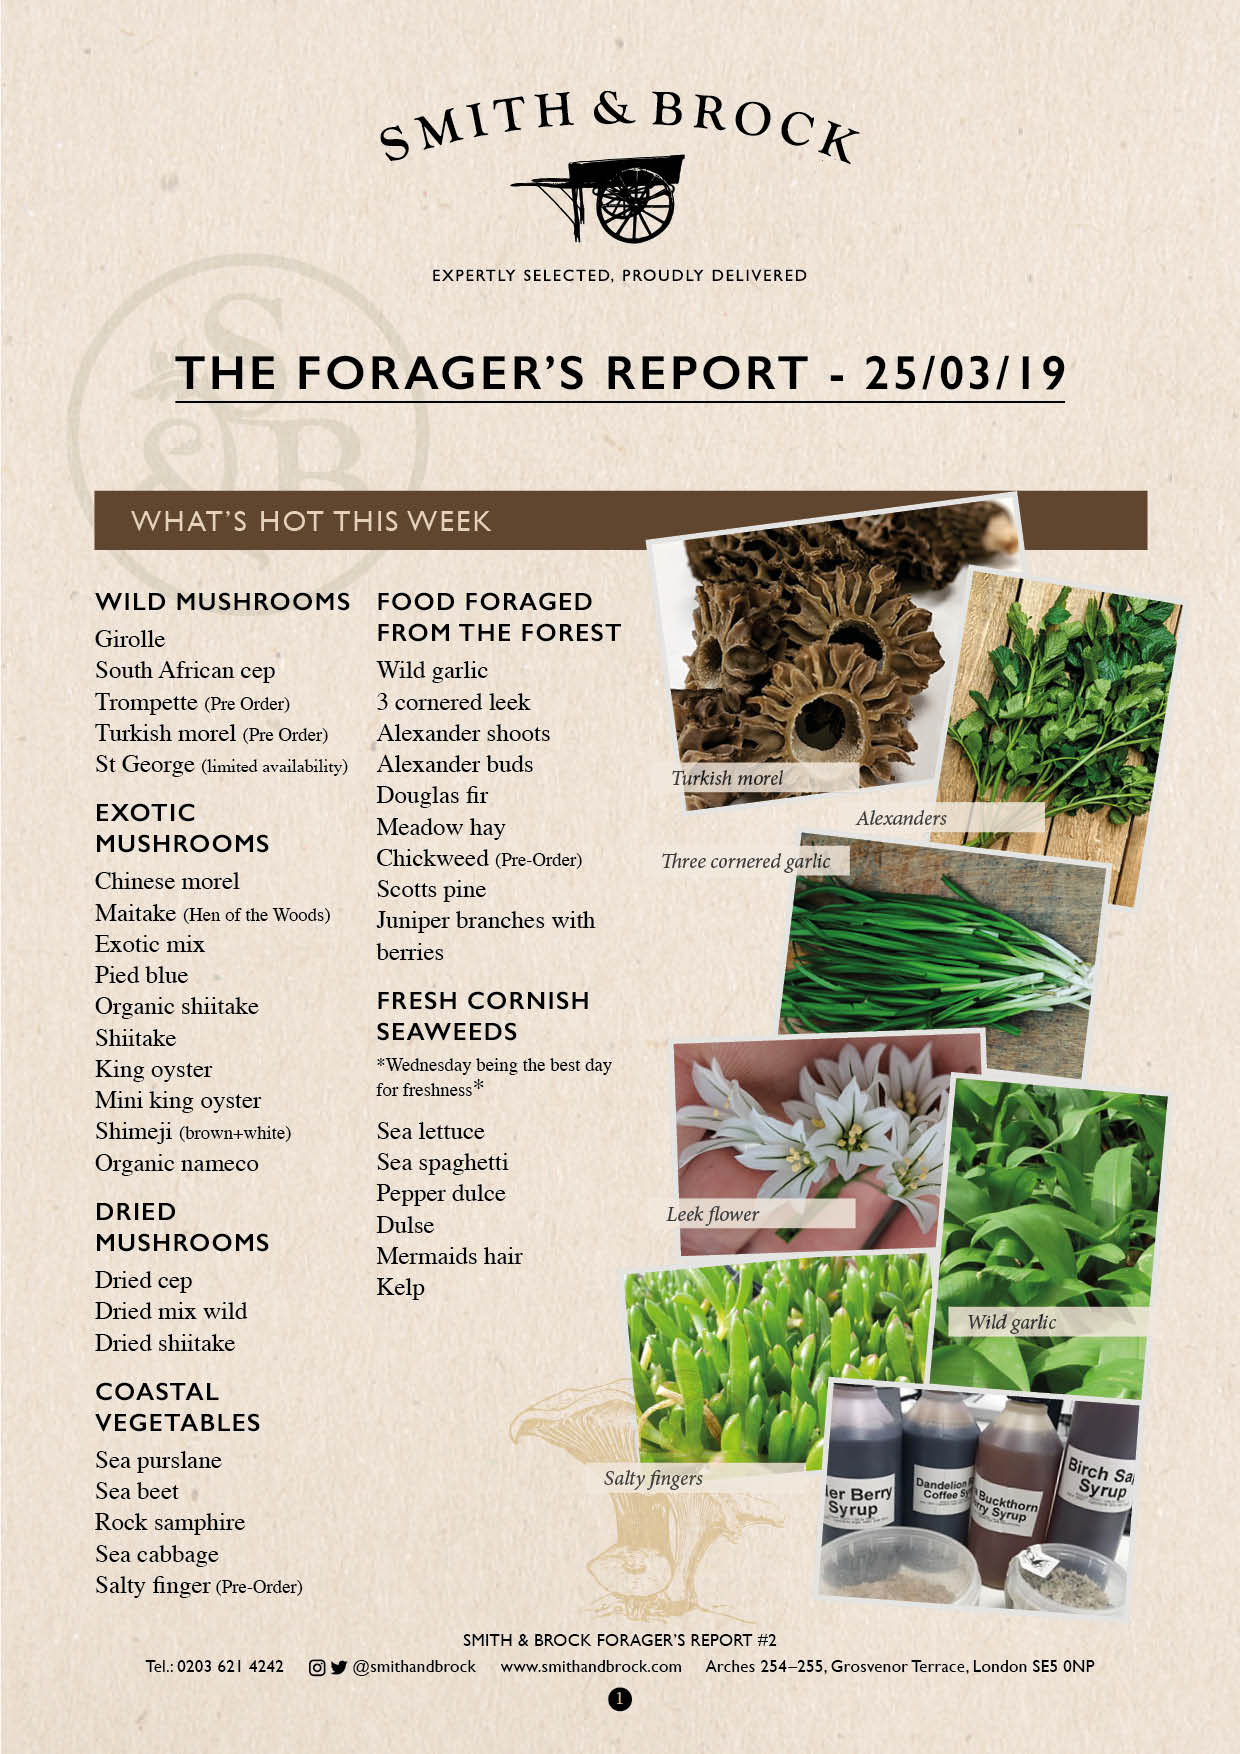 Smith&Brock Foraged Products Report 25 Mar 2019 2